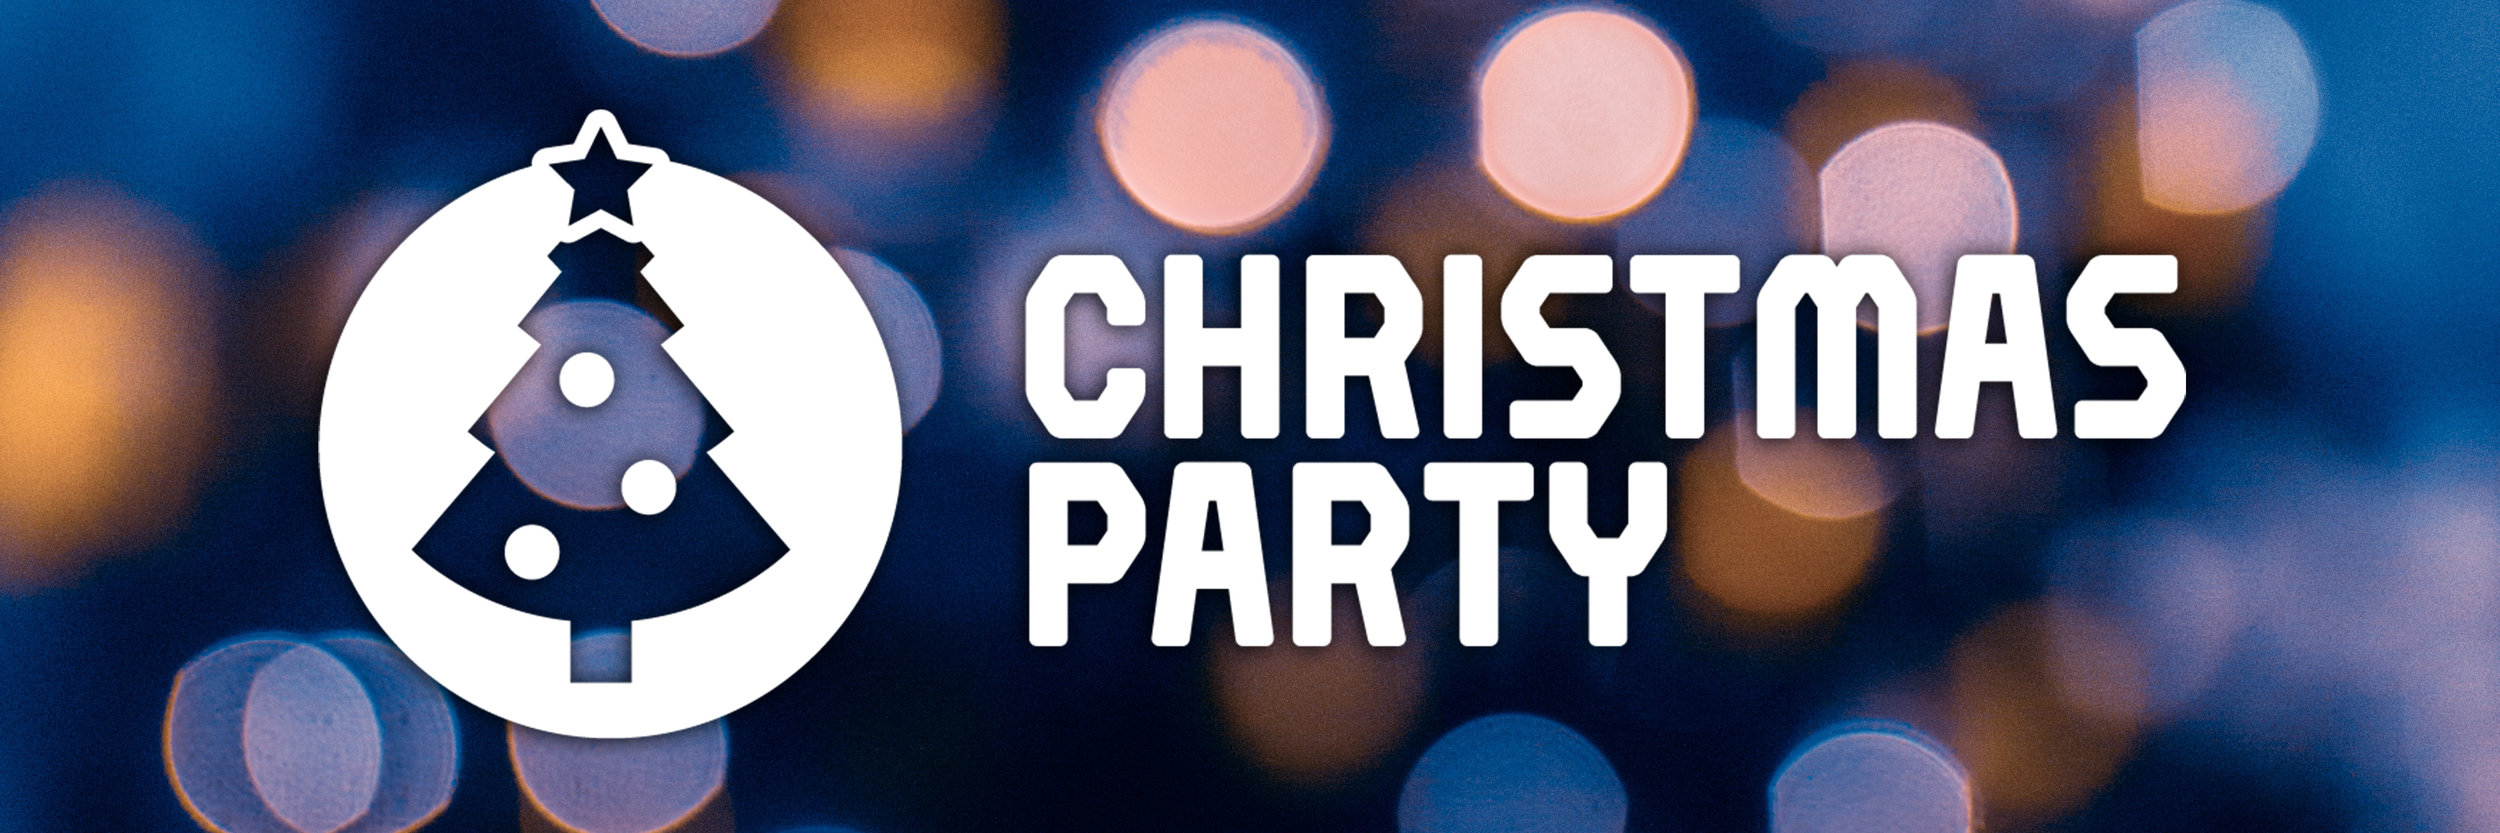 Christmas Party 3x1.jpg